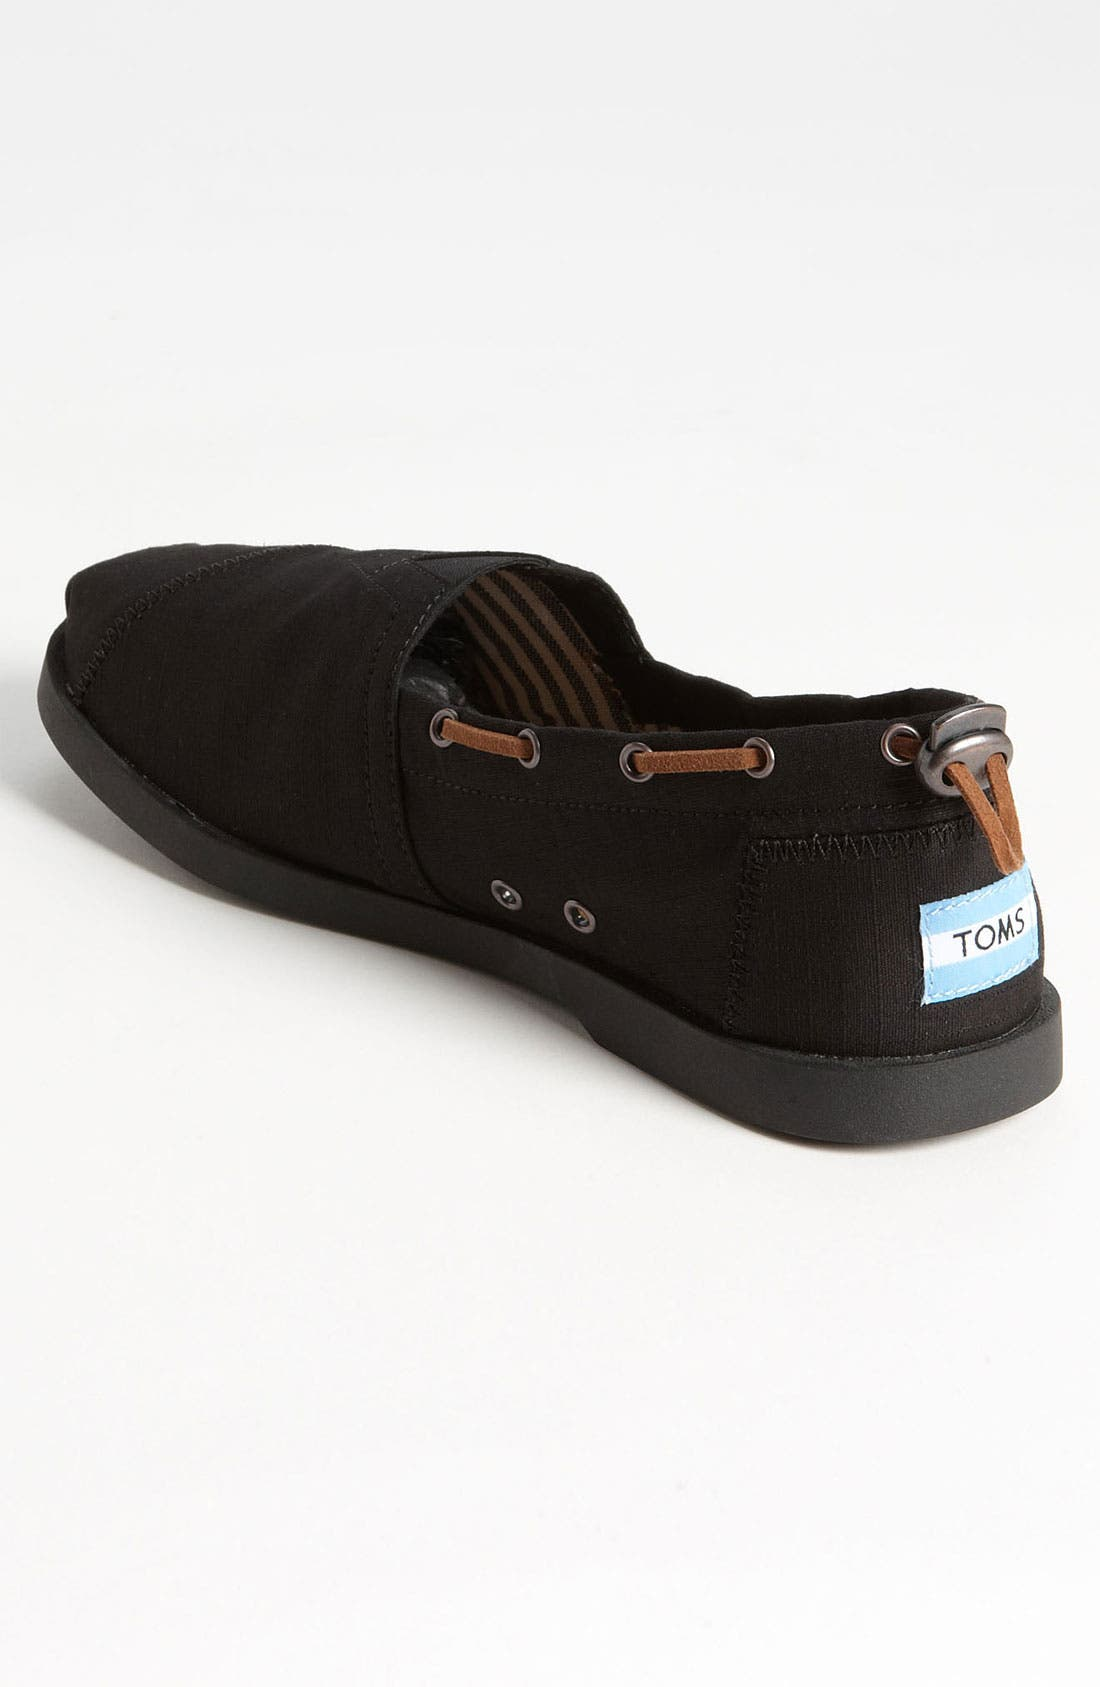 Alternate Image 2  - TOMS 'Bimini - Nautical' Boat Shoe (Men)